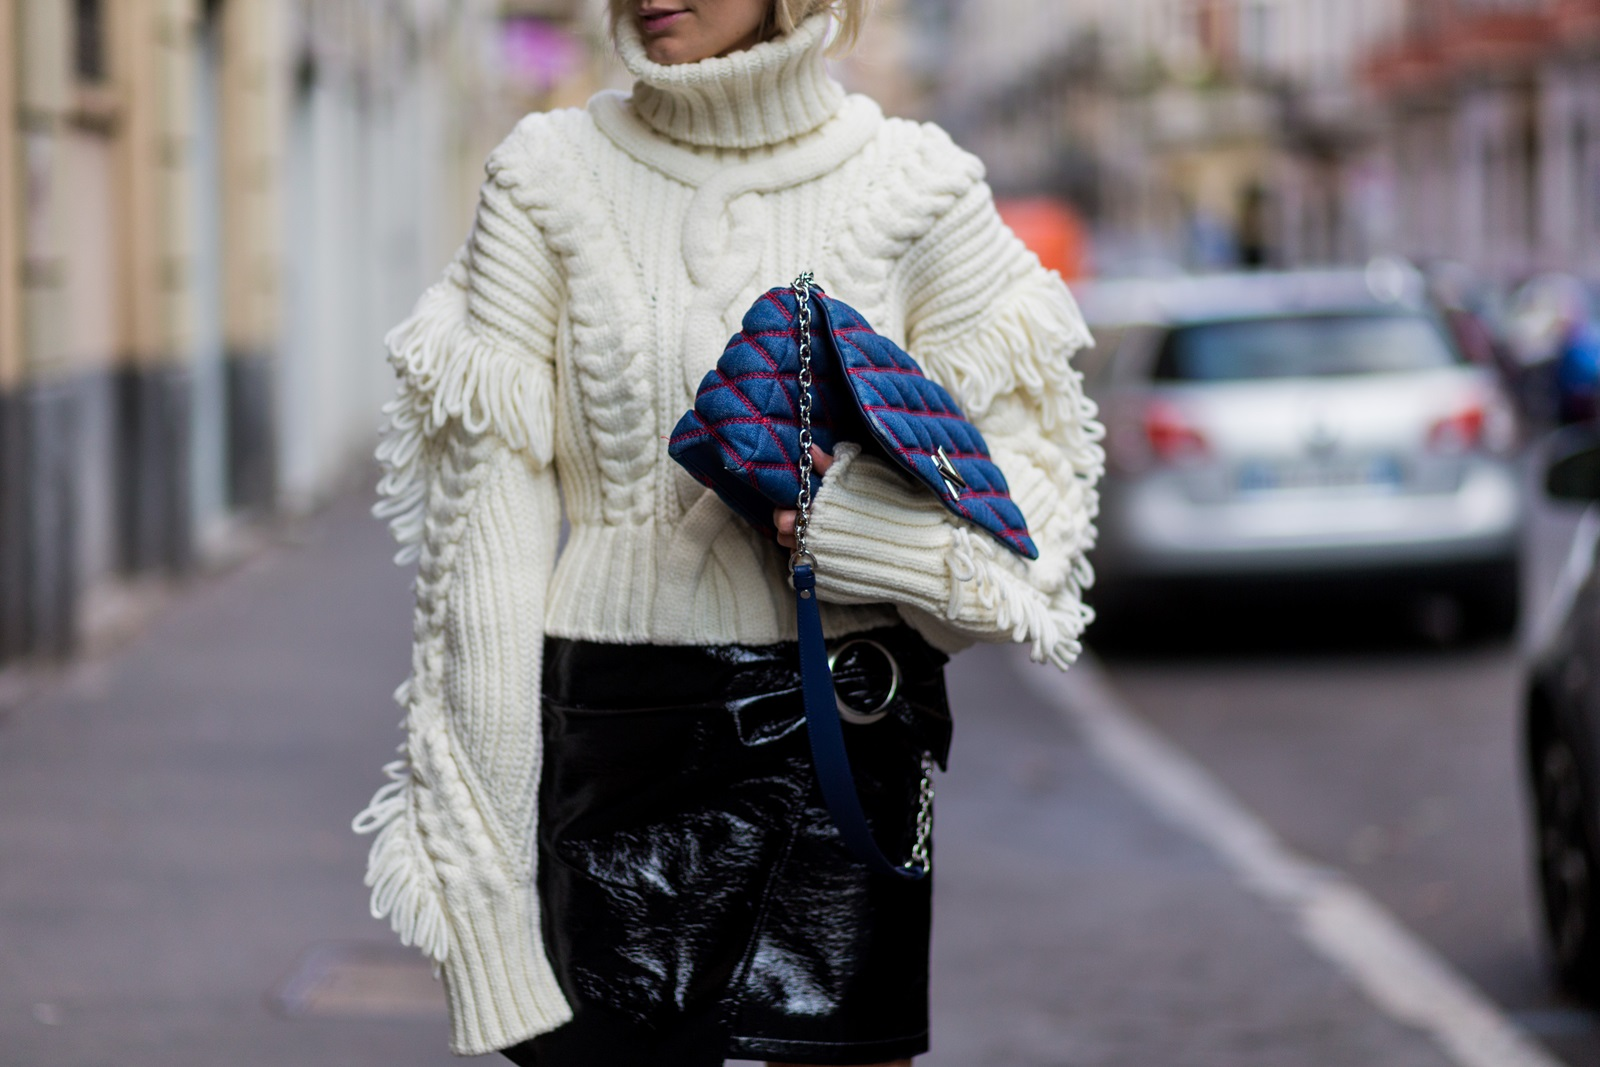 MILAN, ITALY - SEPTEMBER 21: Lisa Hahnbueck wearing a OffWhite Knit Turtle Neck, Oversized Sleeves & Fringes, Mango Asymmetric Patent Leather Skirt with Belt, Louis Vuitton GO-14 PM Denim Bag, is seen outside Alberta Ferretti during Milan Fashion Week Spring/Summer 2017 on September 21, 2016 in Milan, Italy. (Photo by Christian Vierig/Getty Images) *** Local Caption *** Lisa Hahnbueck